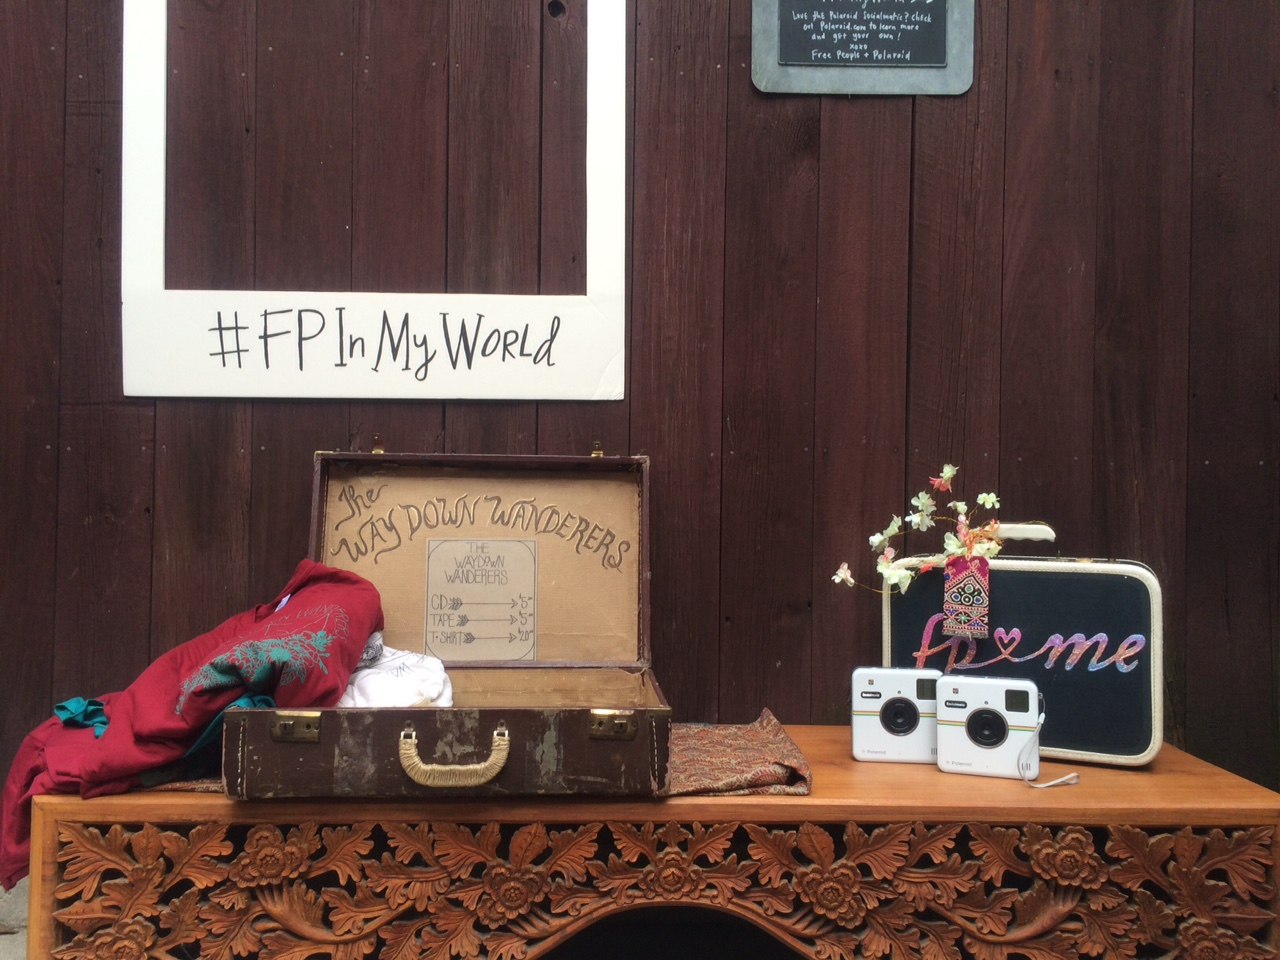 fp <3 me suitcase and Polaroid cameras on a table